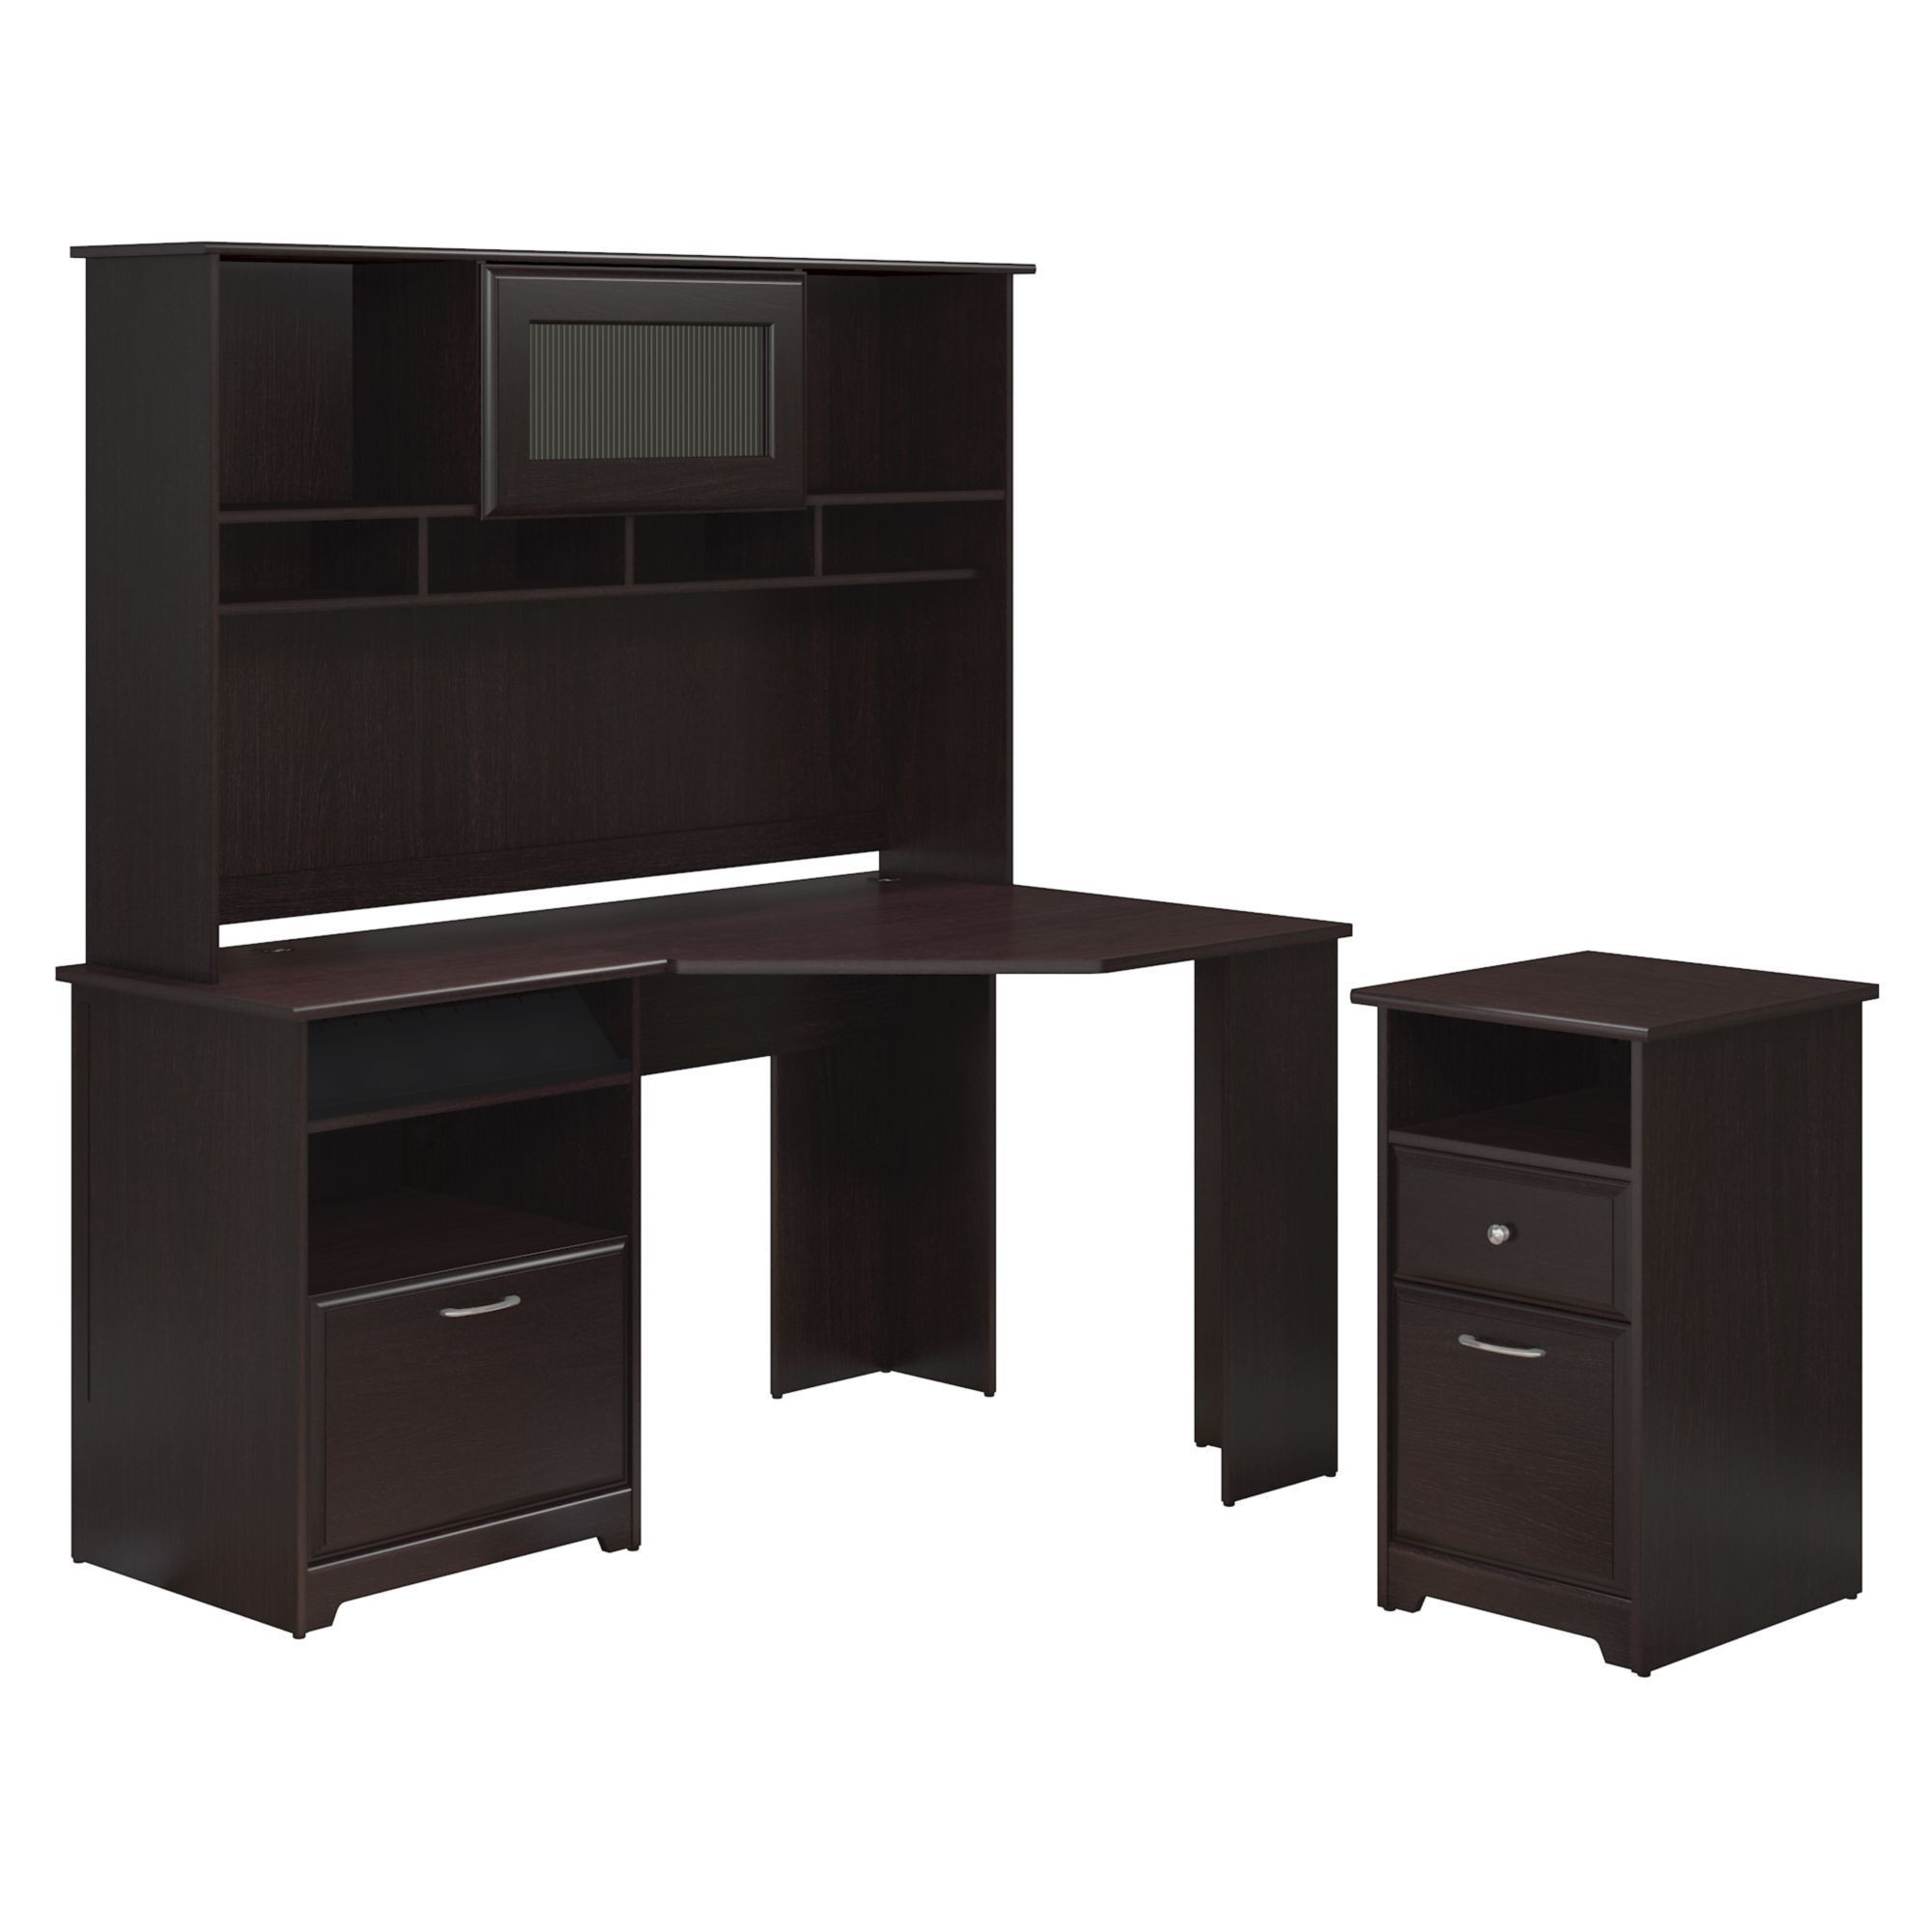 unbeatable office design table top furniture hutch home desk with small black and